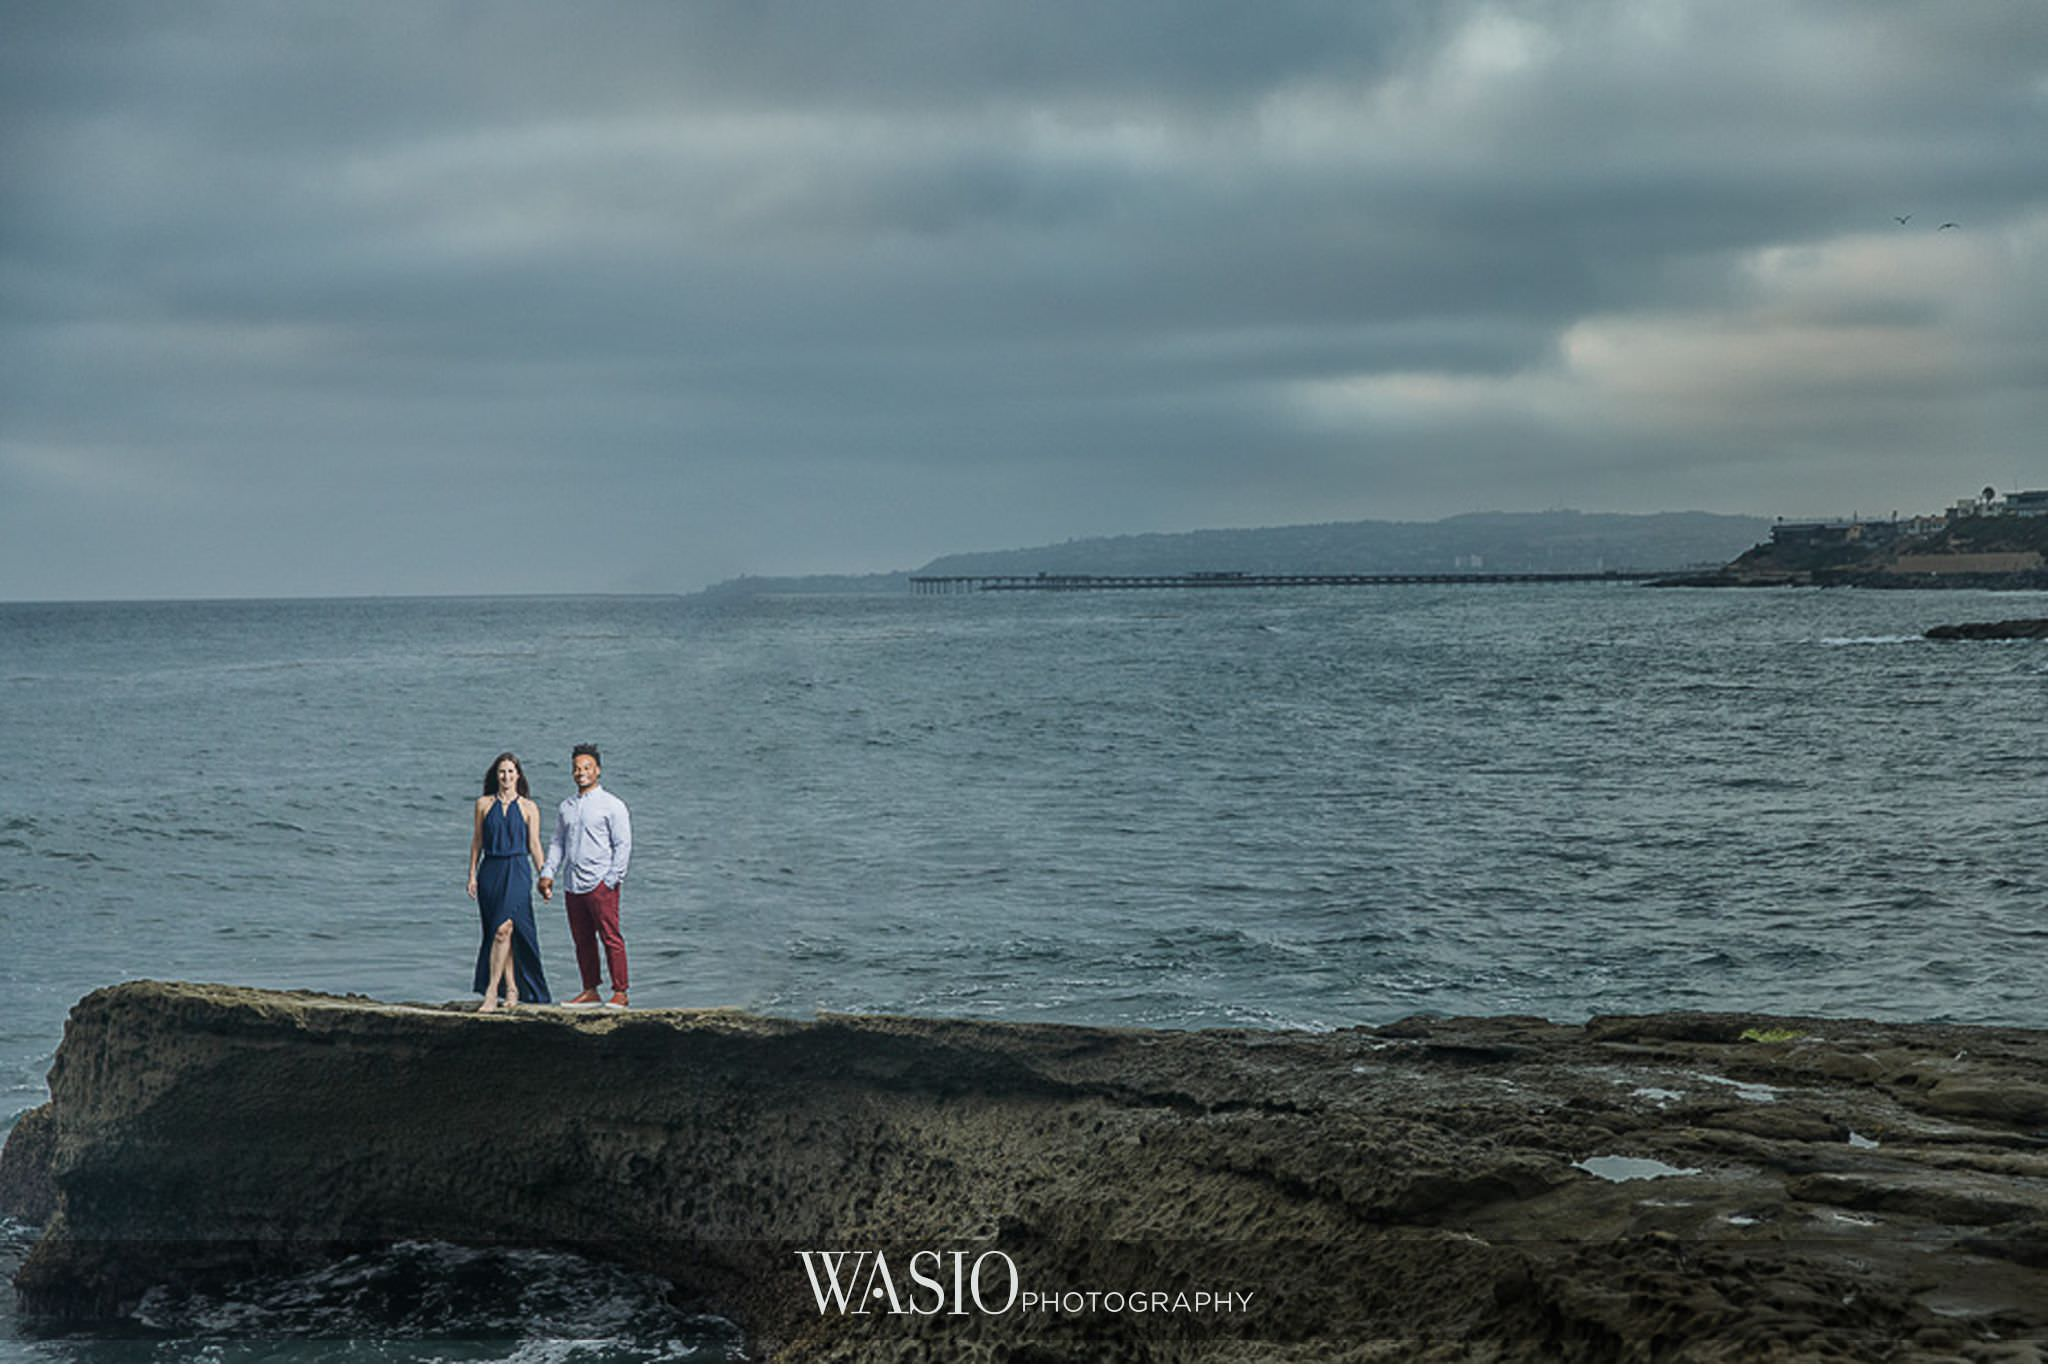 Sunset-Cliffs-San-Diego-Engagement-landscape-ocean-views-landscape-photography-65 Sunset Cliffs San Diego Engagement - Laura and La Broi